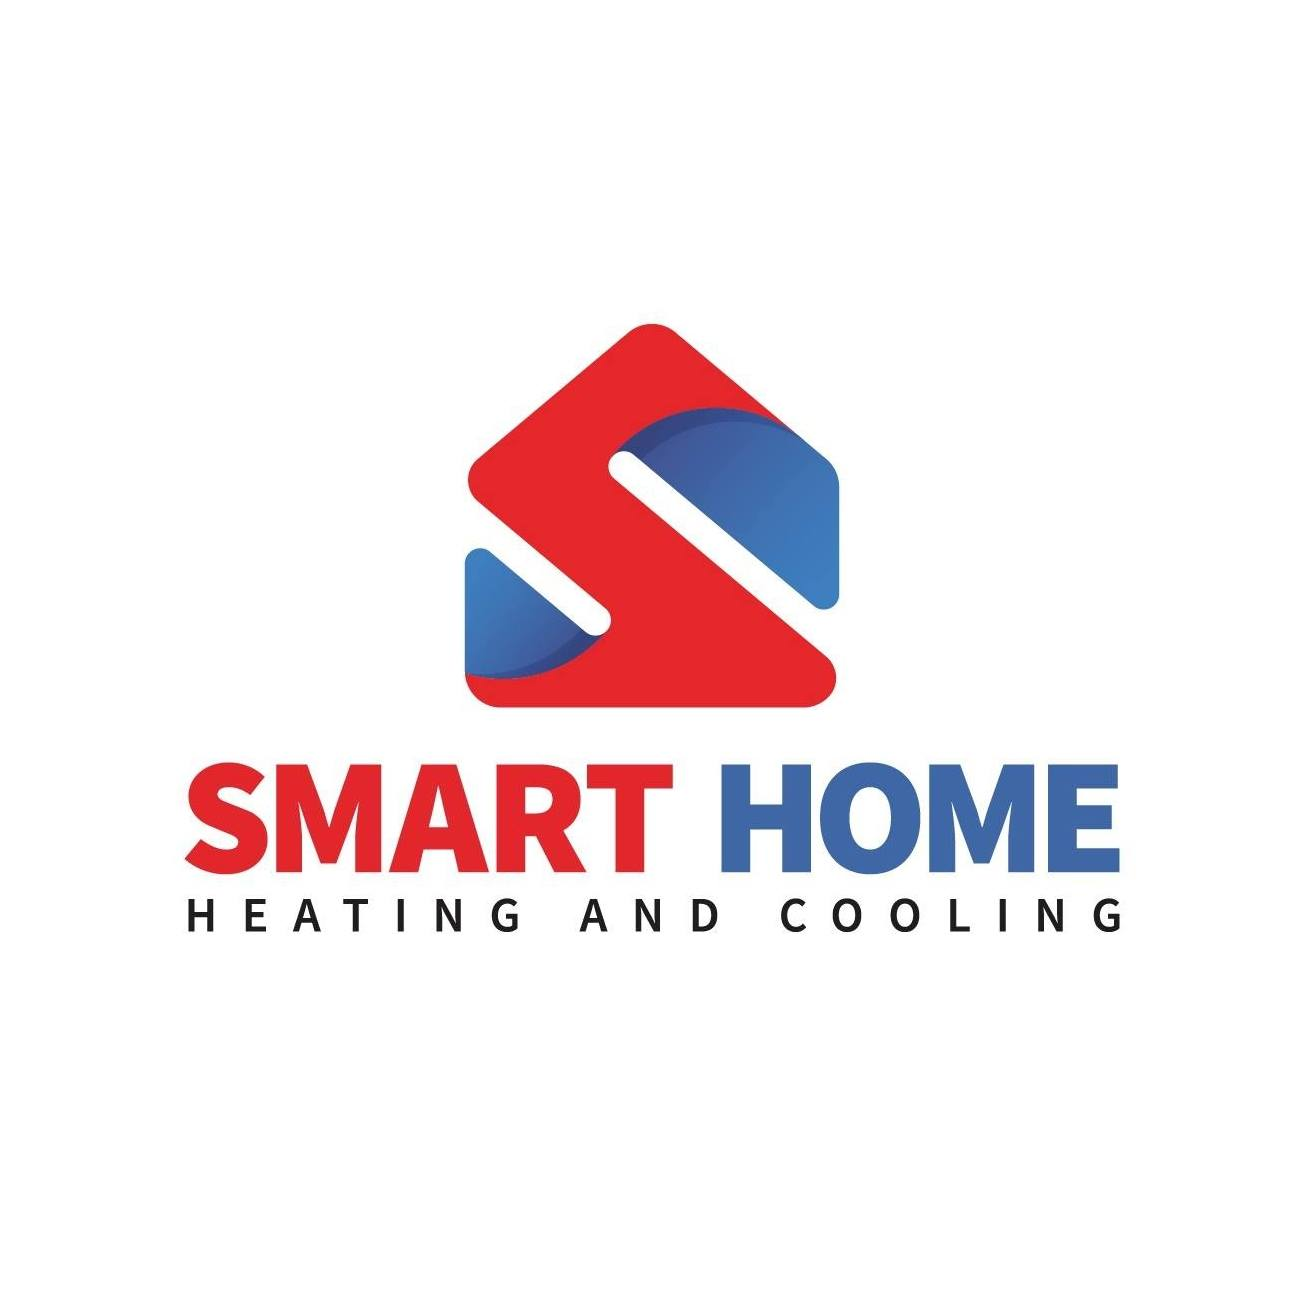 Smart Home Heating and Cooling Announces That the Best Time for Furnace Maintenance in Buffalo, NY is Now